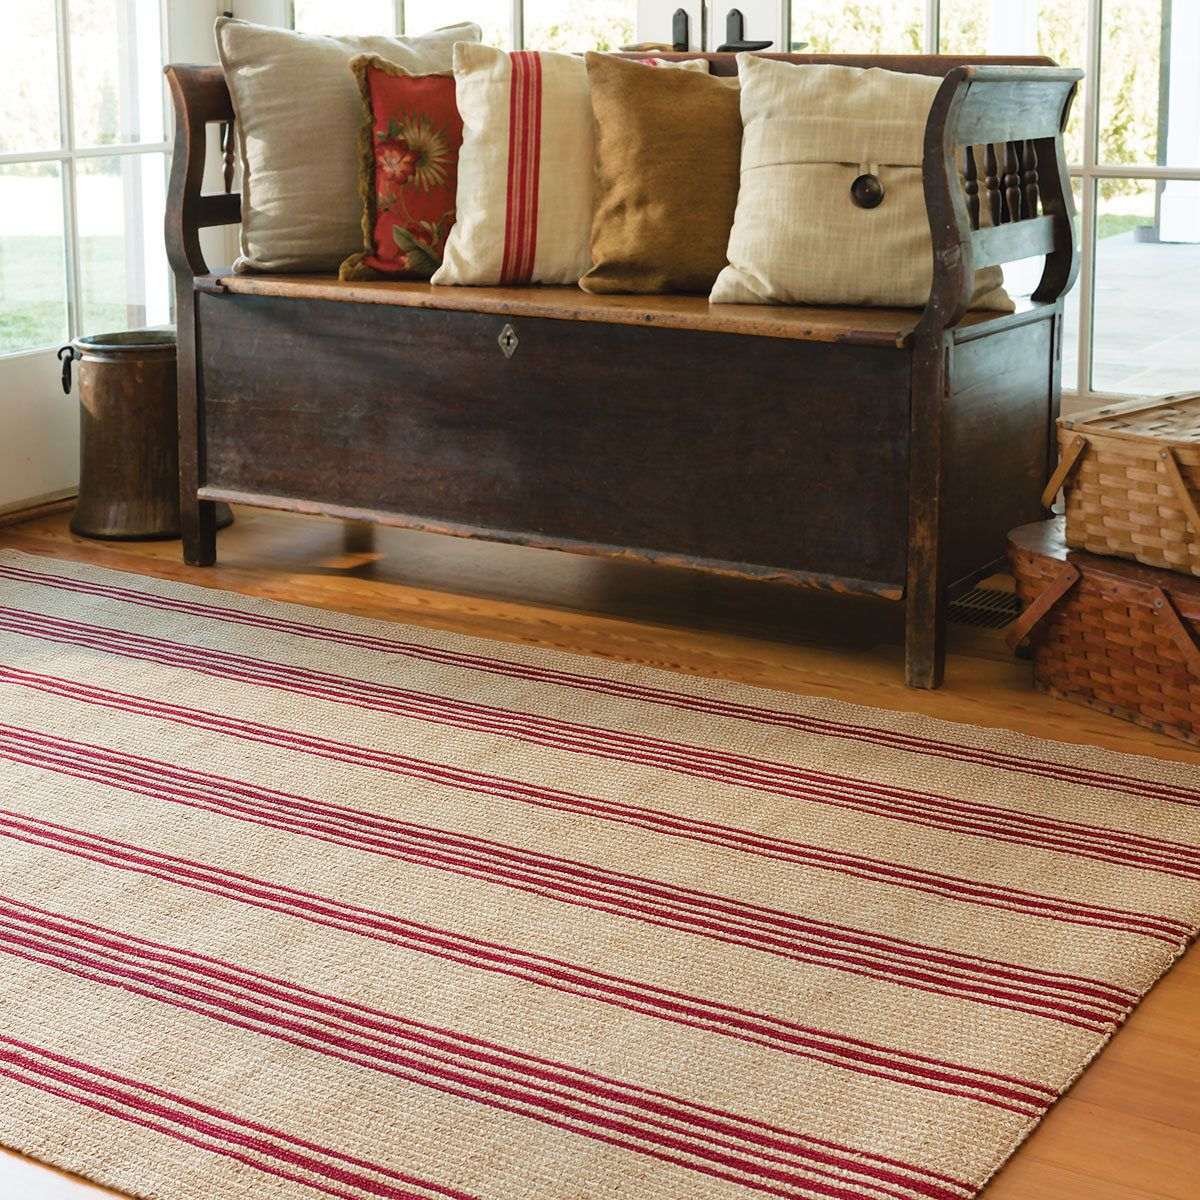 Farmhouse red striped braided jute rug by willowhillsigns